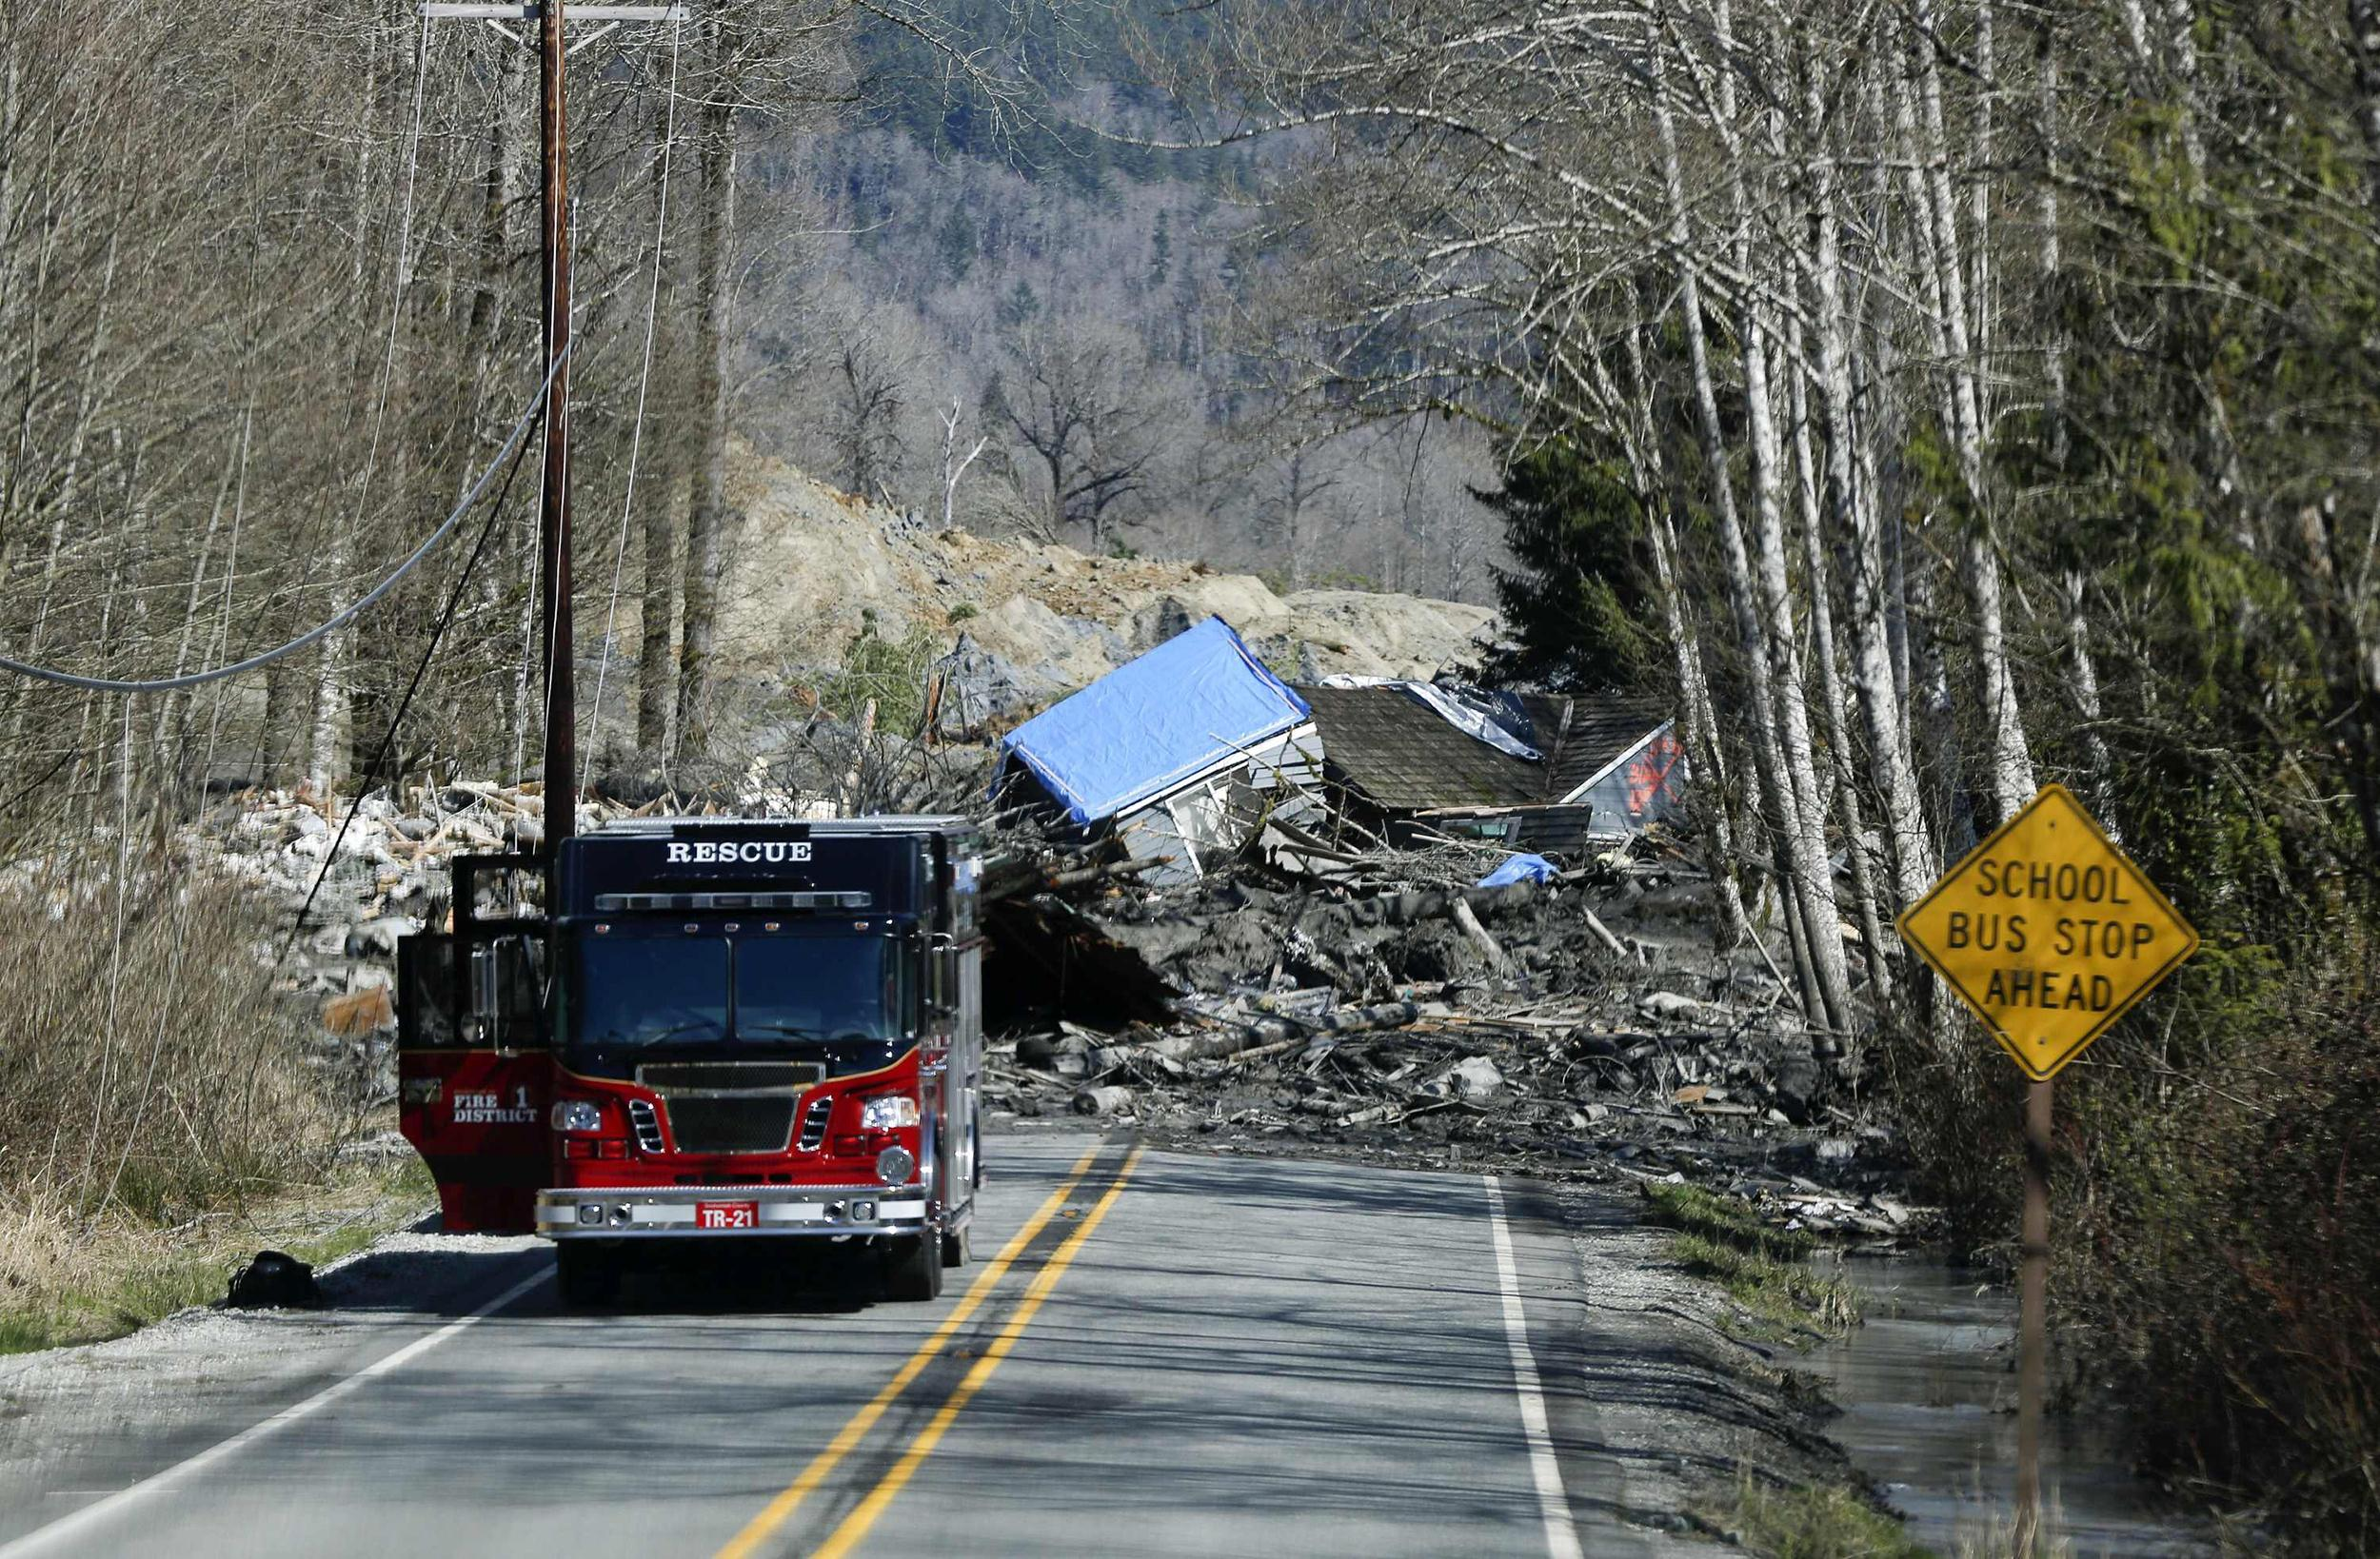 Image: A emergency vehicle is parked as a landslide and debris block Highway 530 near Oso, Wash.